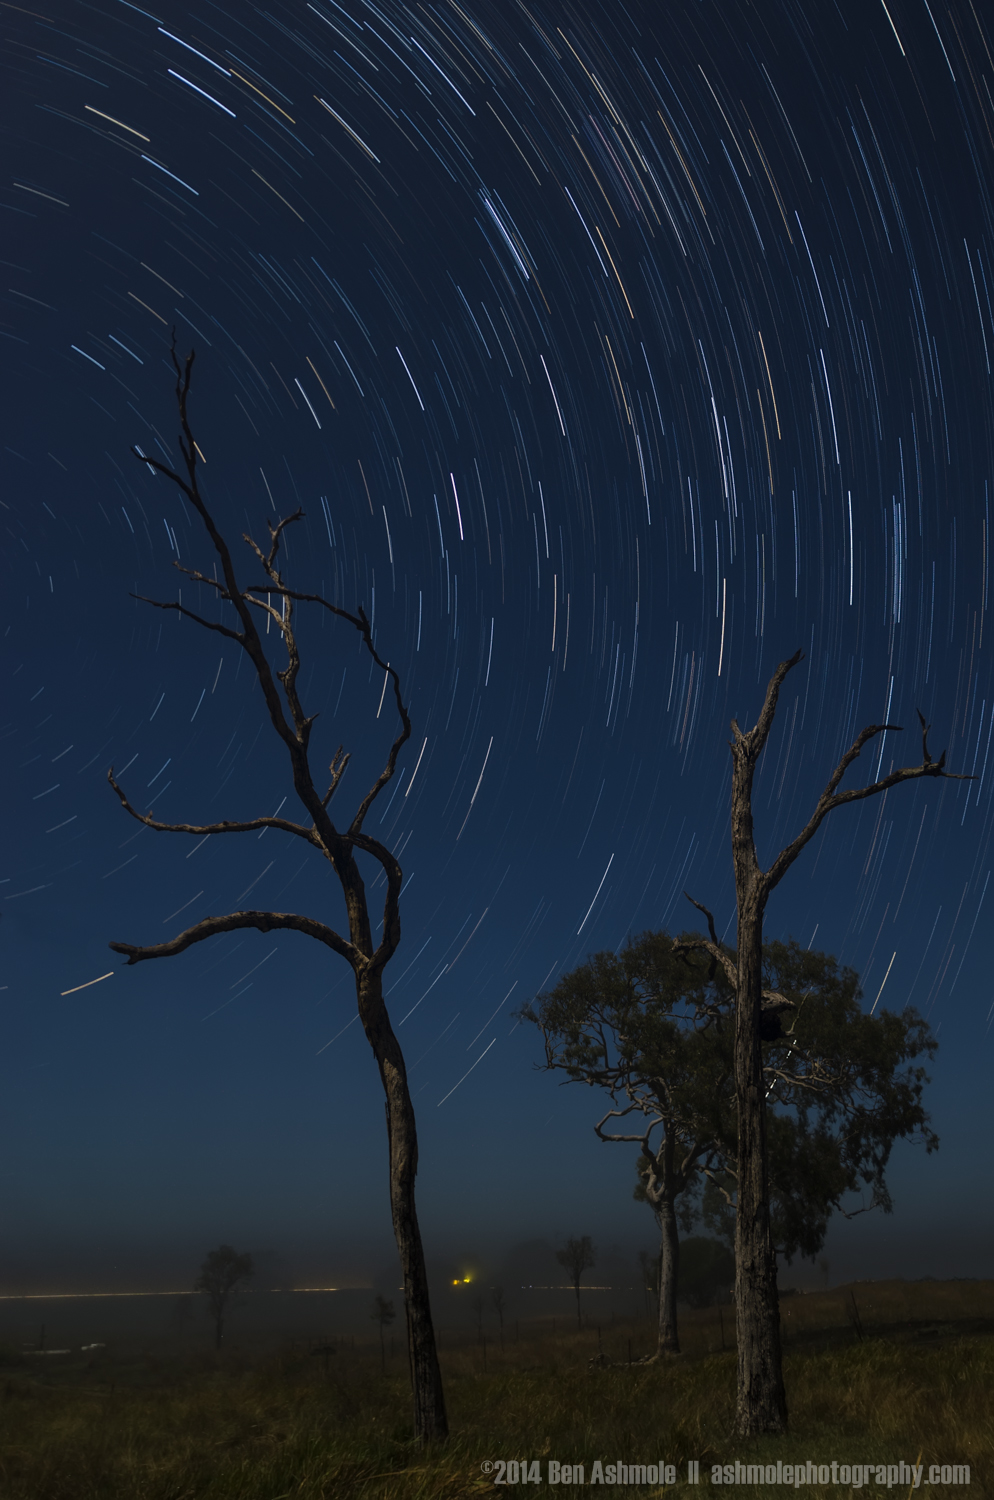 Star Trails, Bundaberg, Queensland, Australia